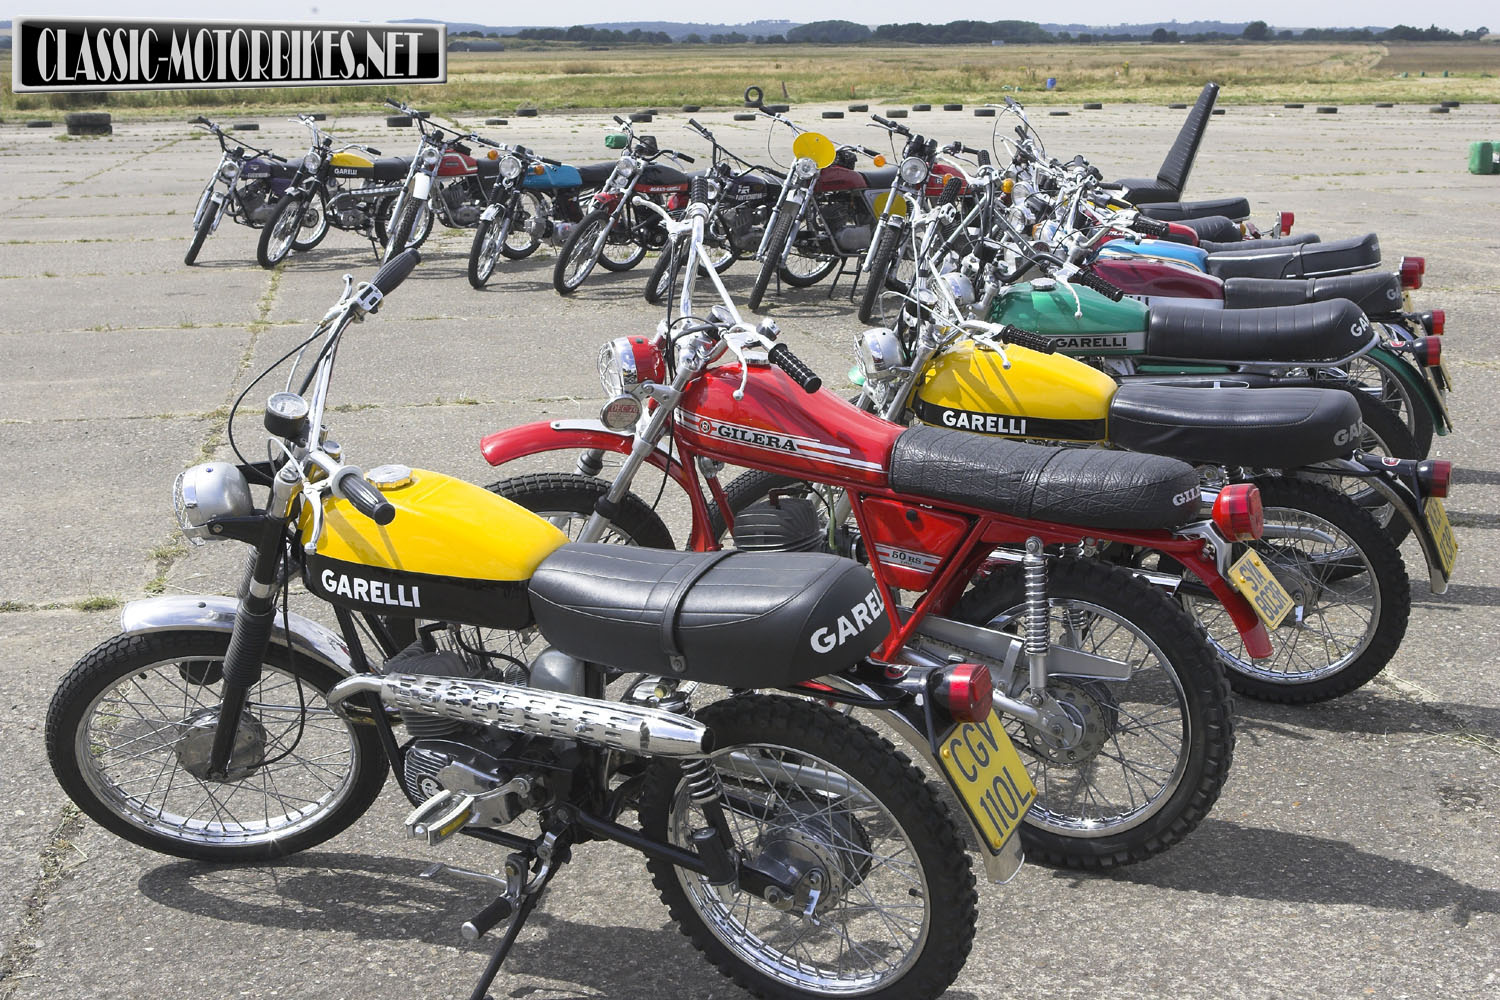 1970s moped shootout classic motorbikes. Black Bedroom Furniture Sets. Home Design Ideas